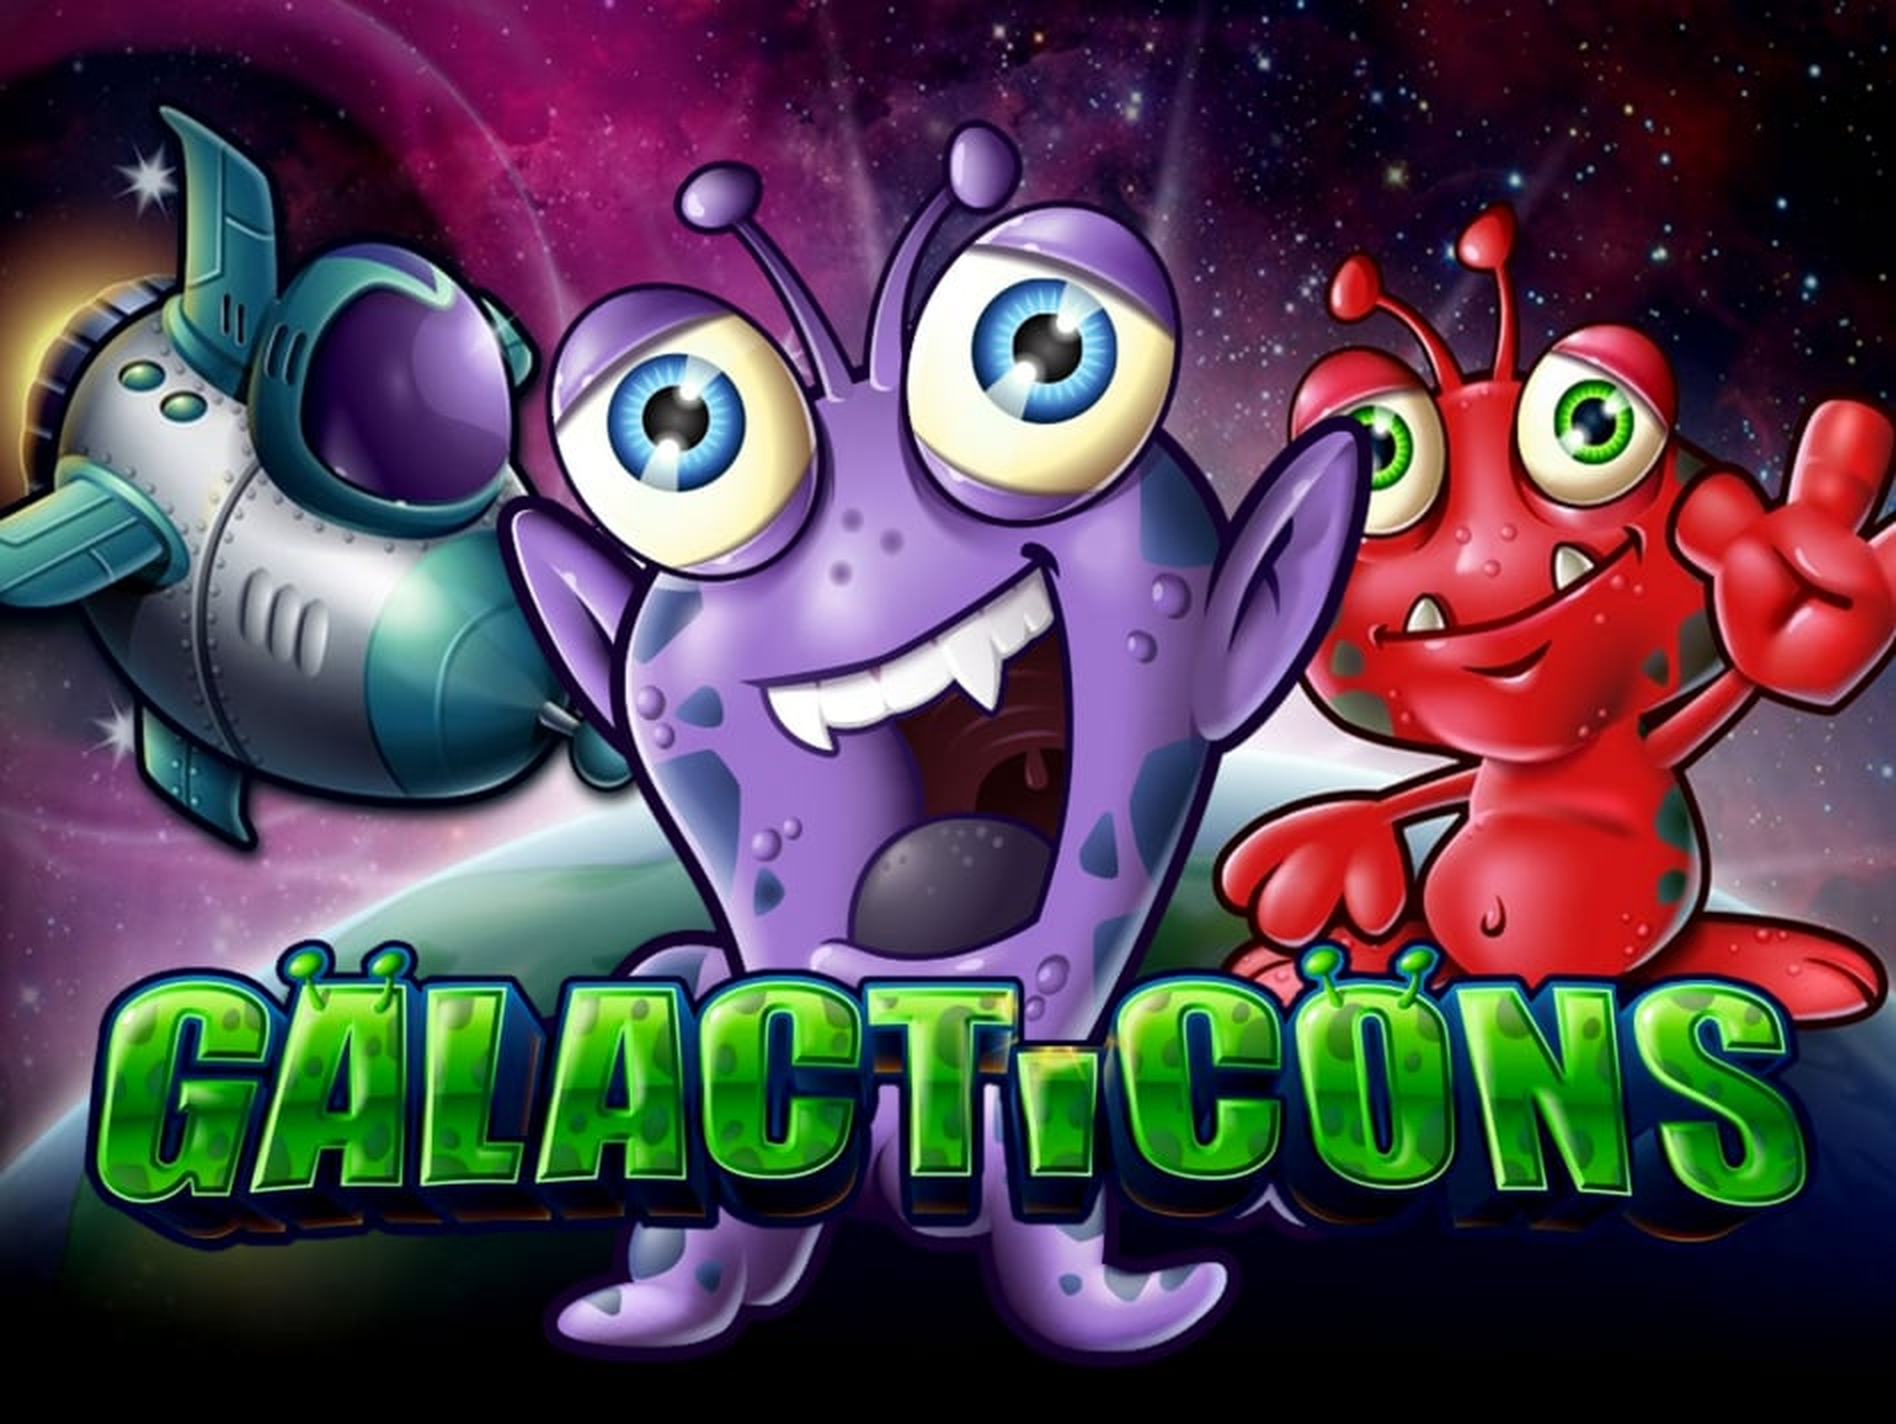 The Galacticons Online Slot Demo Game by Microgaming